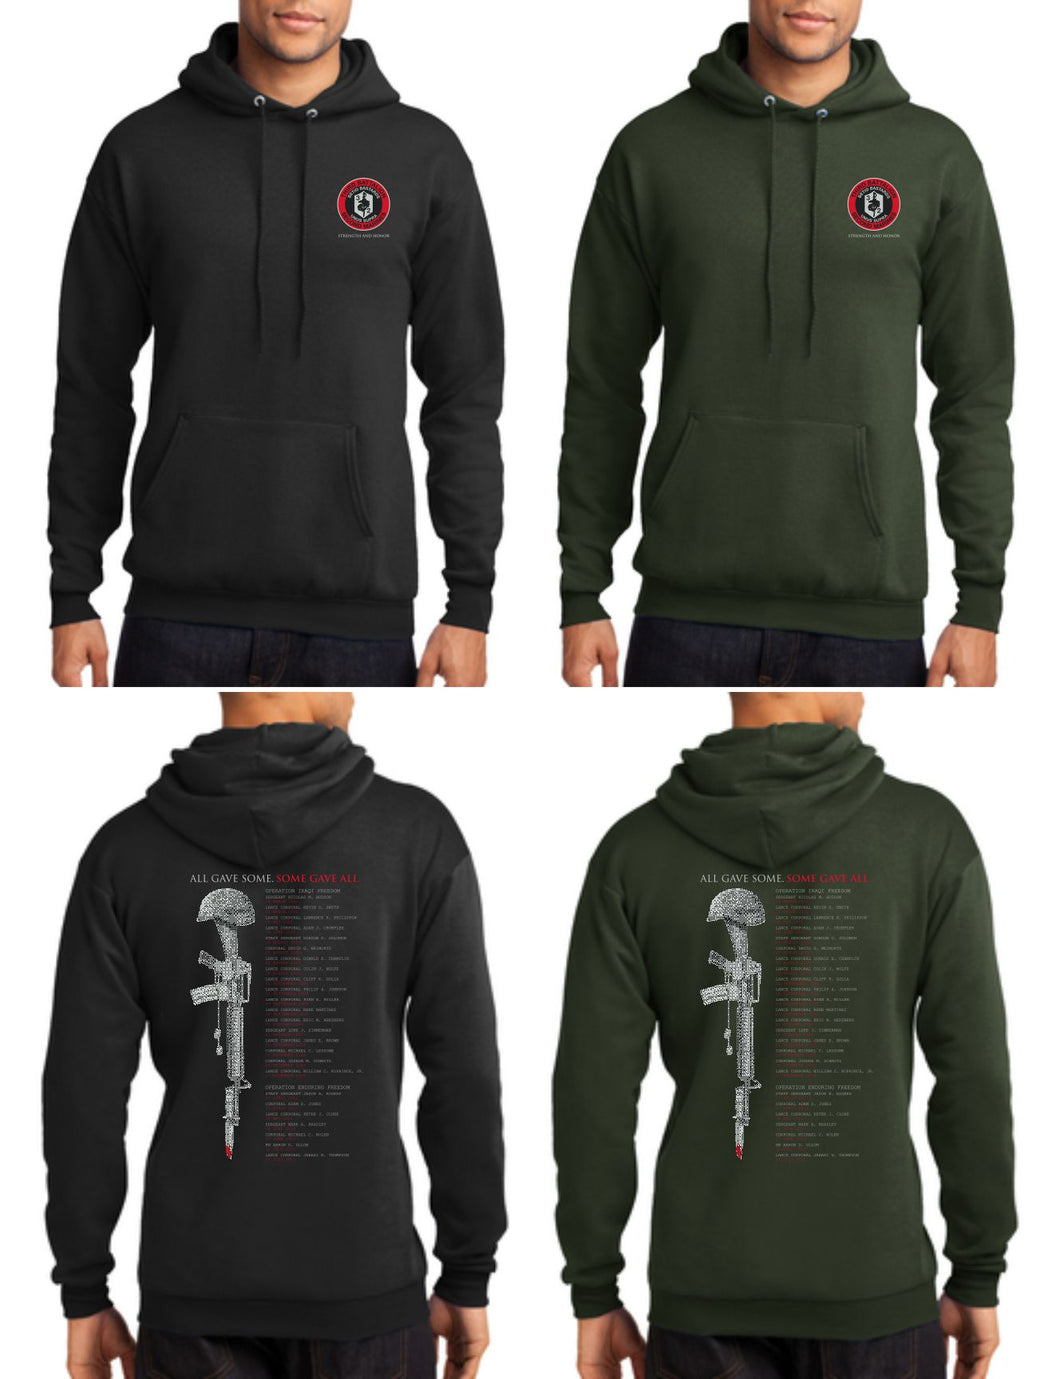 PC78H Hoodie - 3rd Battalion 2nd Marine 2012 Memorial Design by Resolution Gear